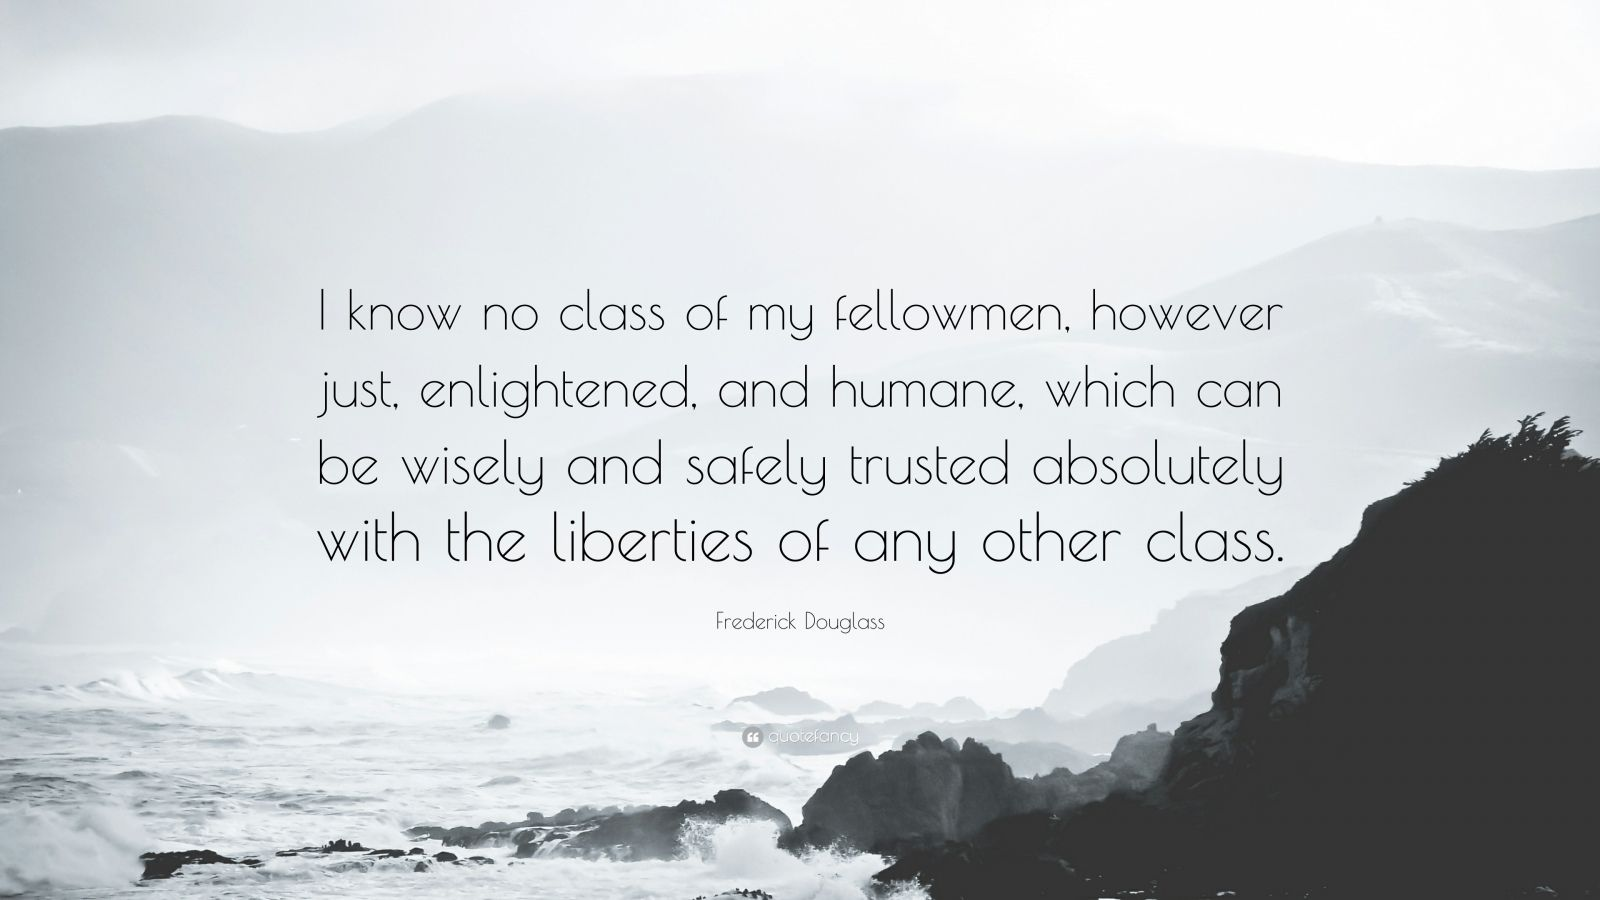 """Frederick Douglass Quote: """"I know no class of my fellowmen, however just, enlightened, and humane, which can be wisely and safely trusted absolutely with the liberties of any other class."""""""